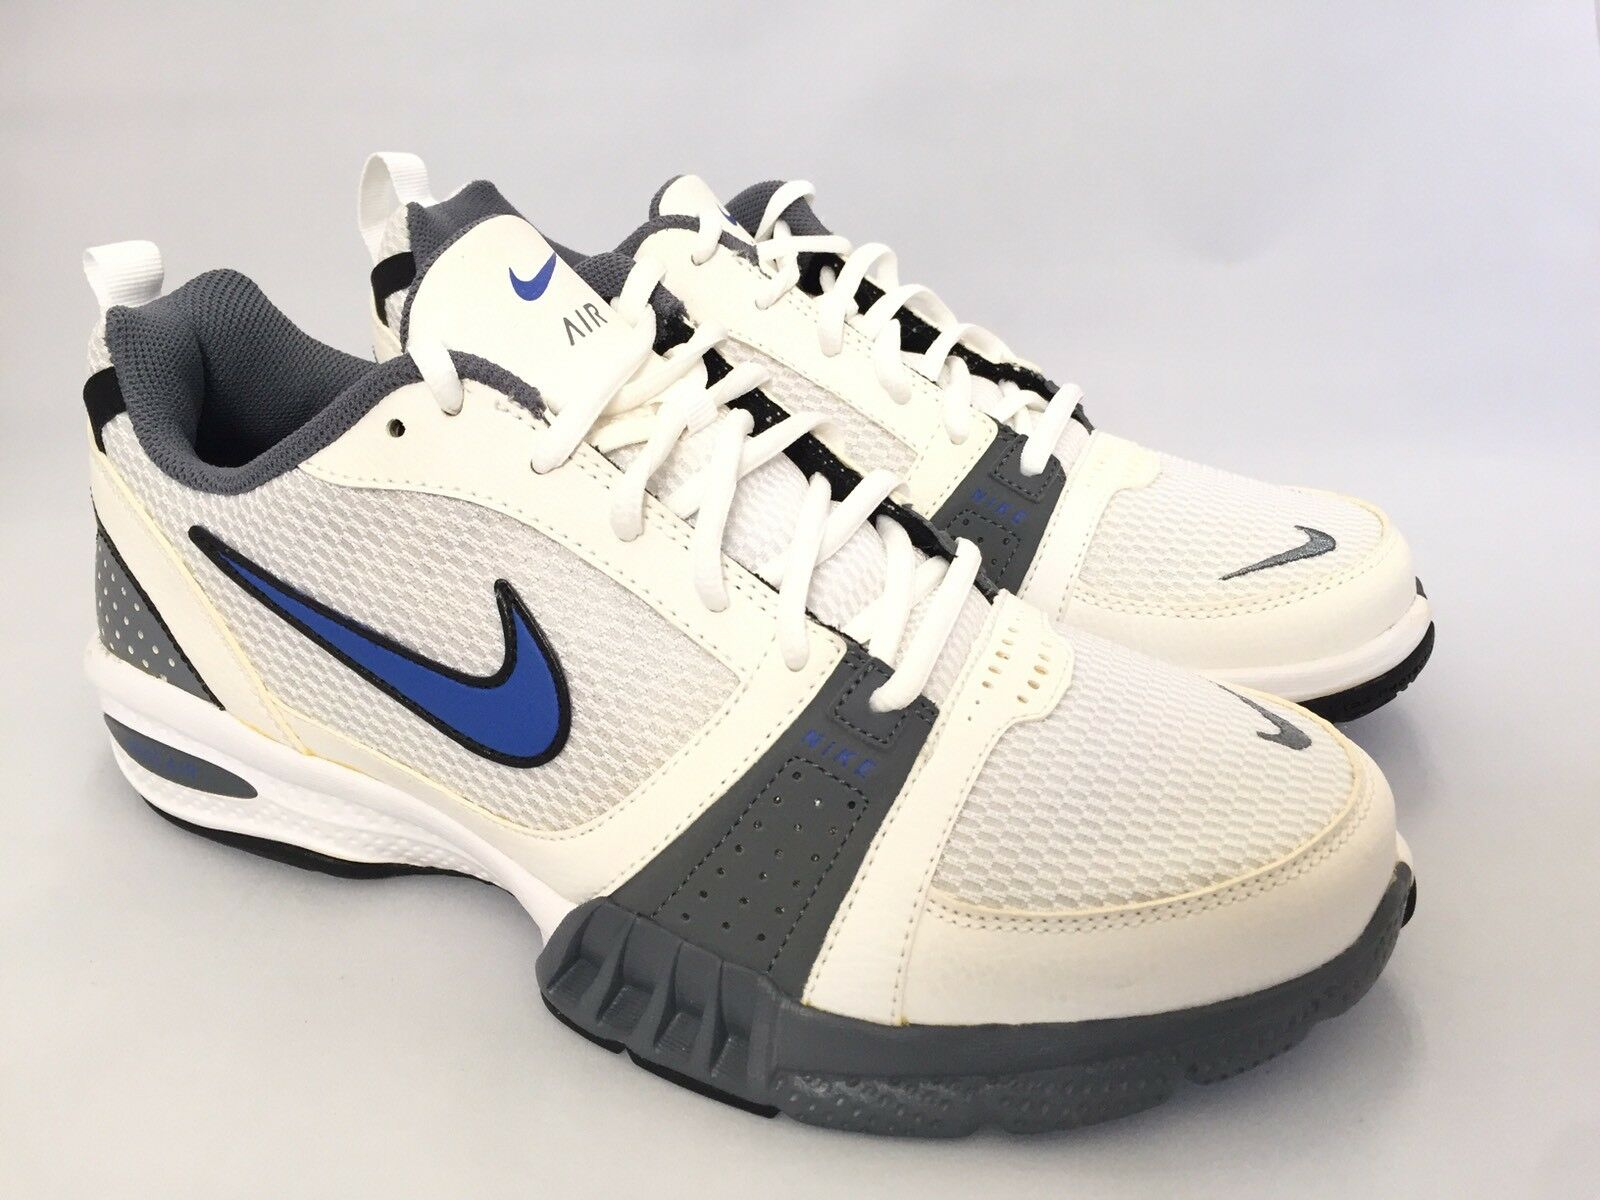 NIKE ZM STRUCTURE ZOOM + 14 RUNNING WALKING SHOES ZOOM STRUCTURE TRAINING BREATHE Uomo 9 4ccaba